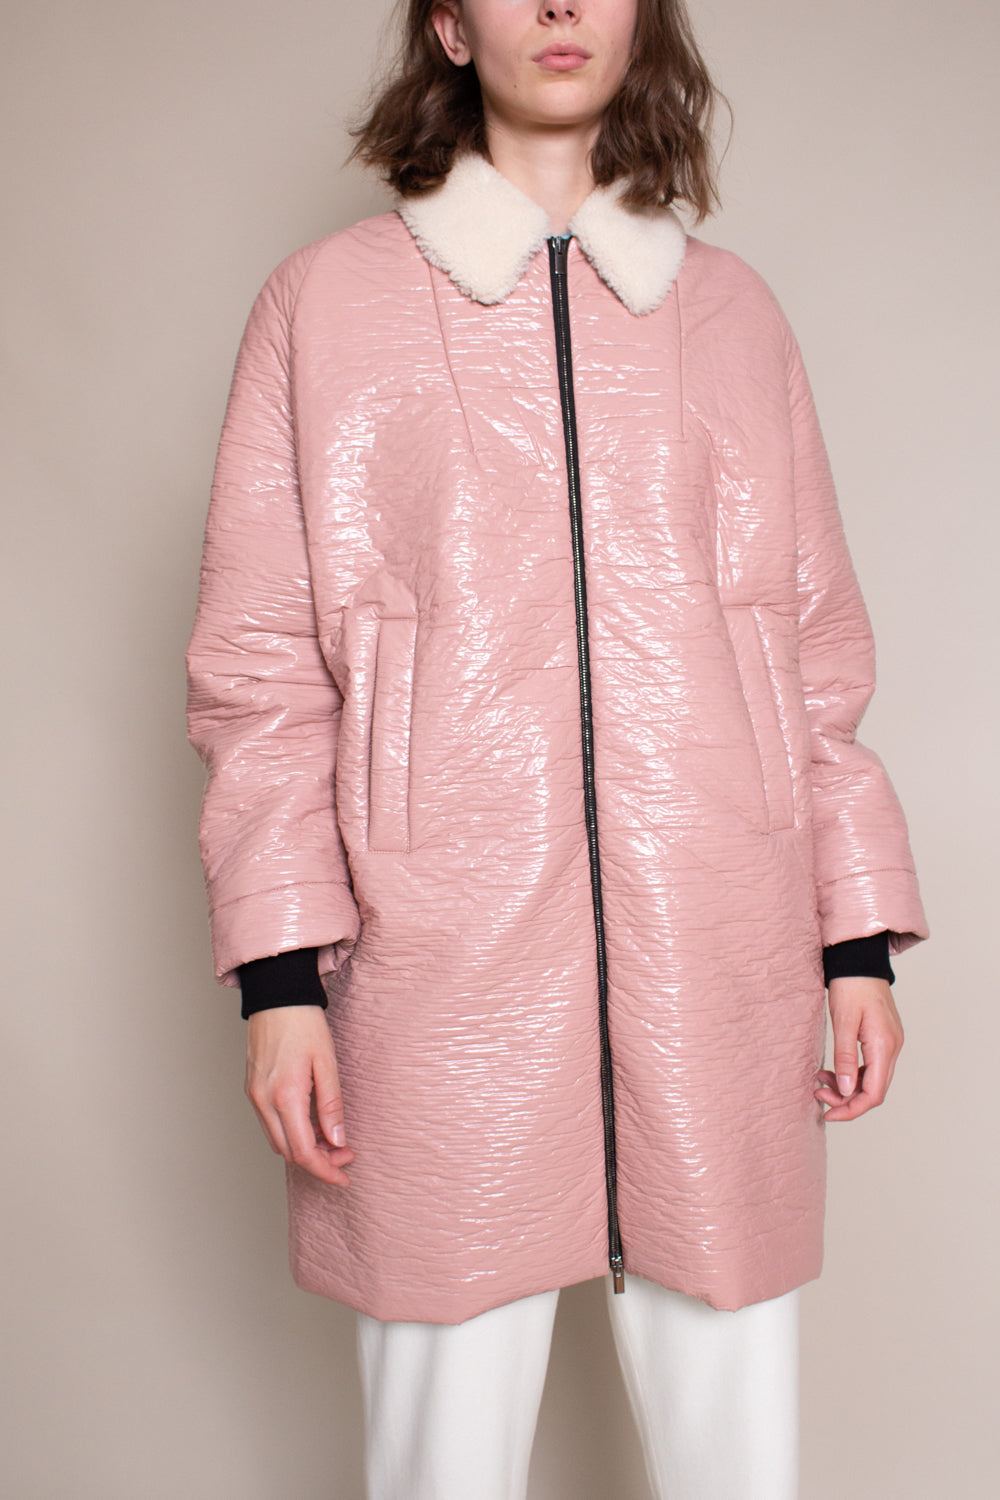 Jaunt Coat in Pink